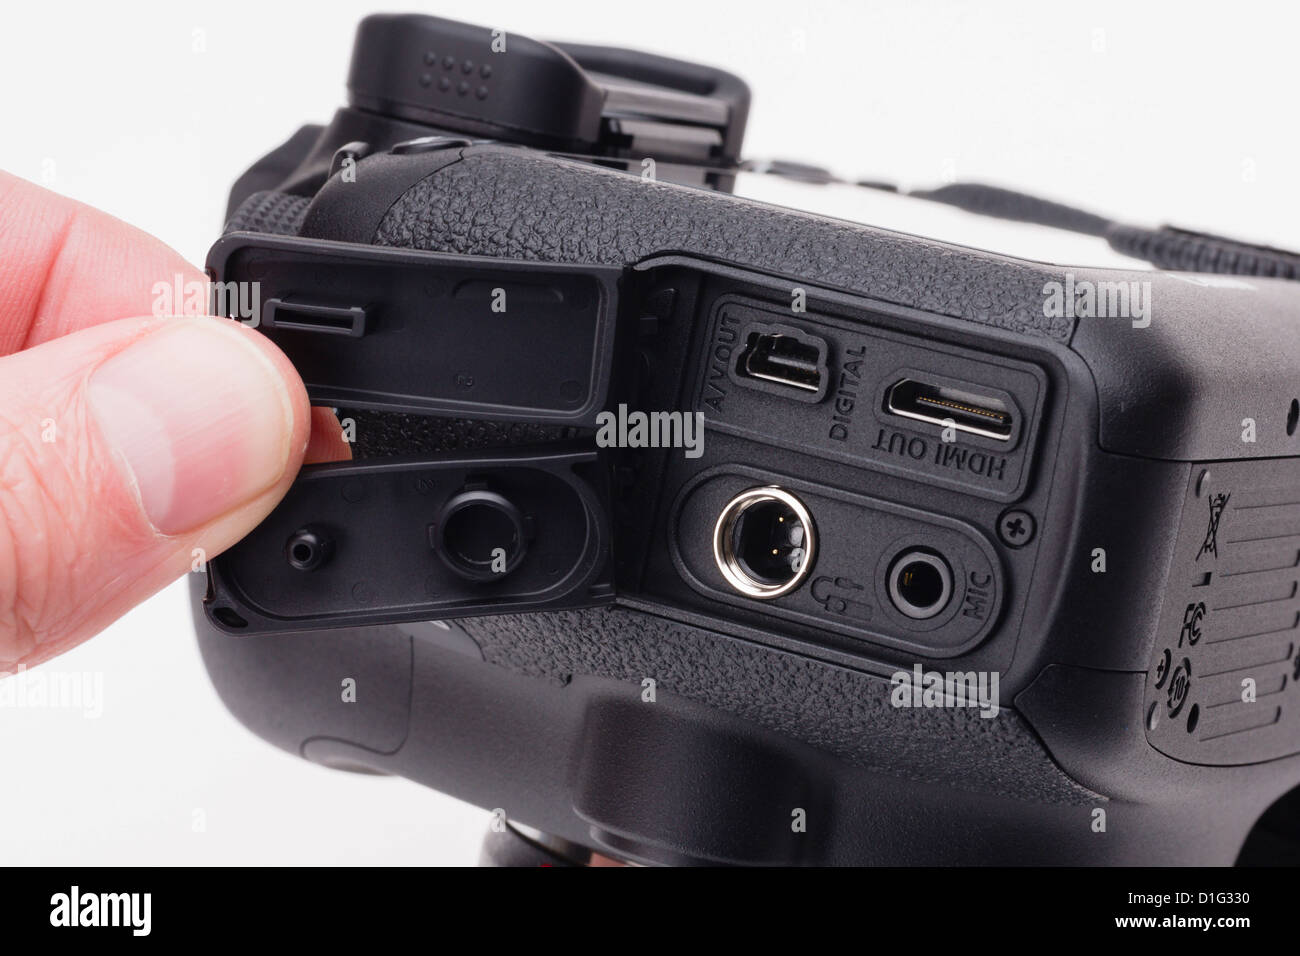 Canon EOS 6D full frame DSLR, budget price. Interfaces for remote ...